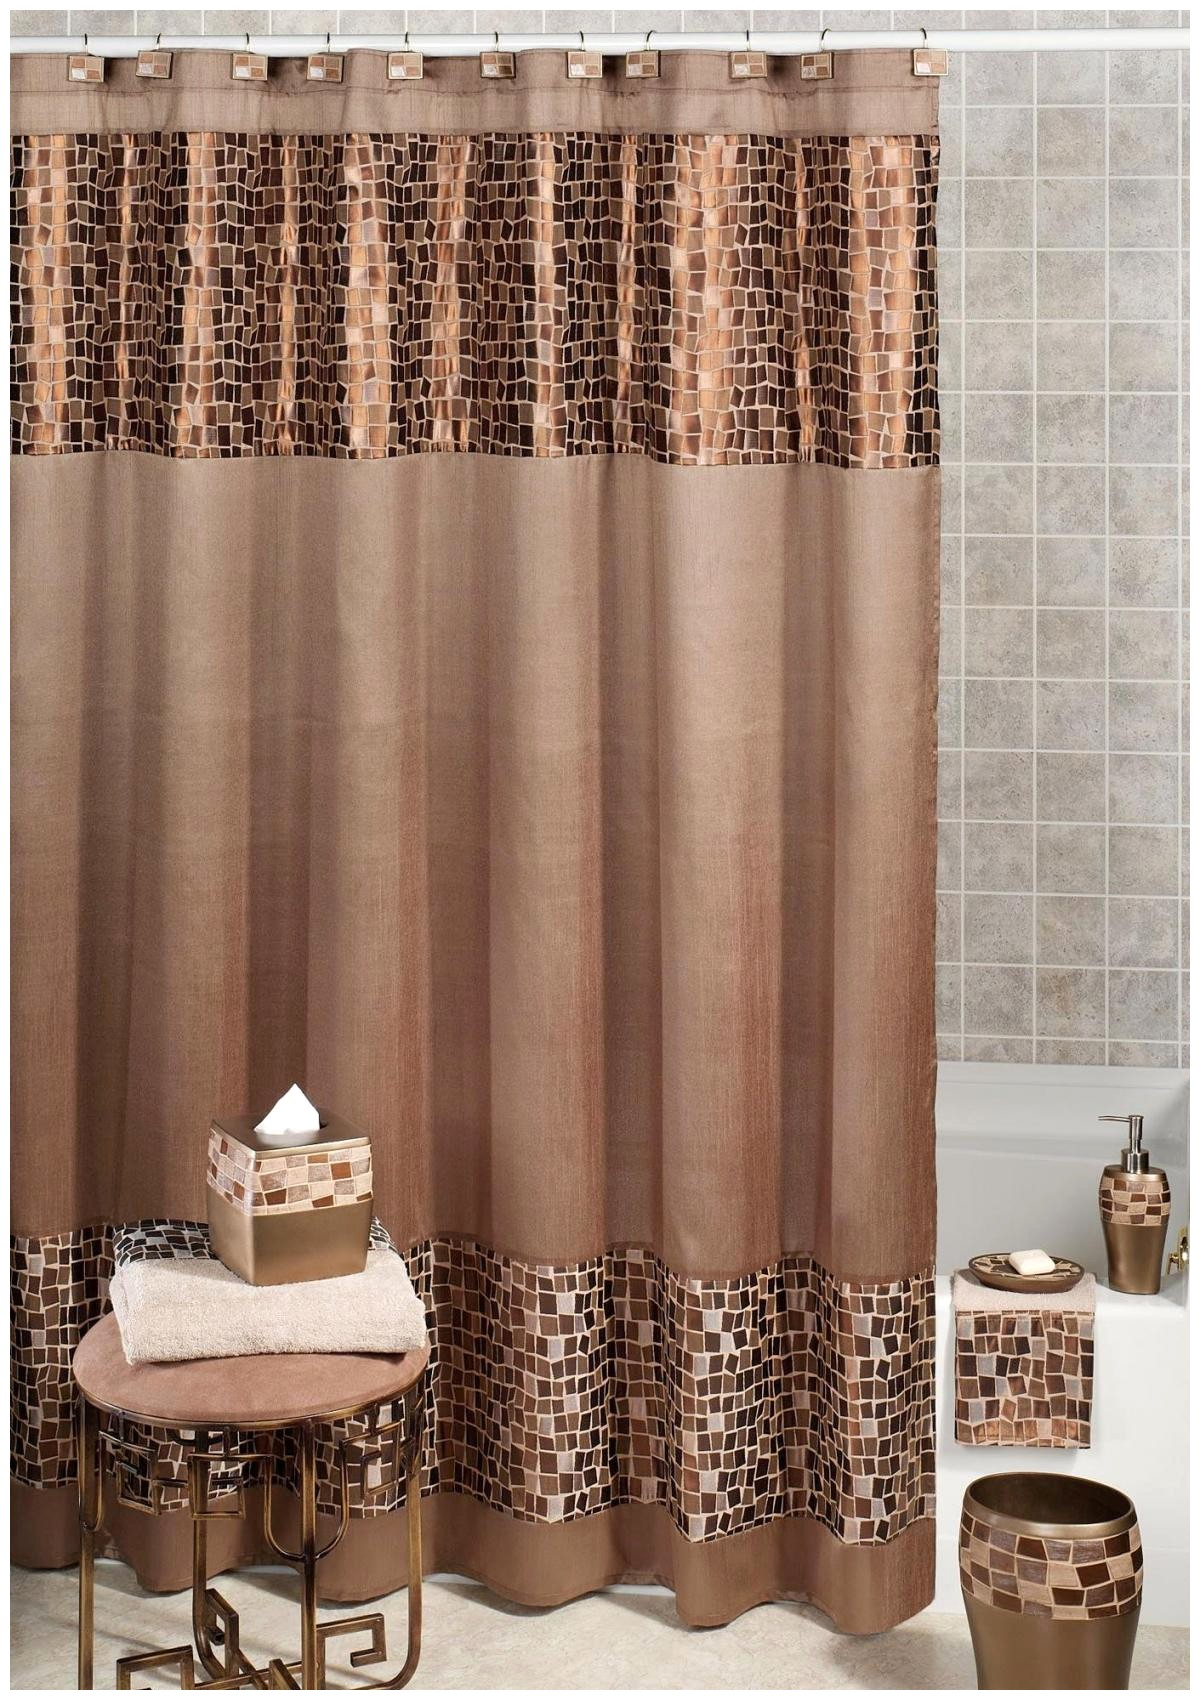 clocks related ideas designer pictures elegant unique curtain cool charming curtains shower fancy